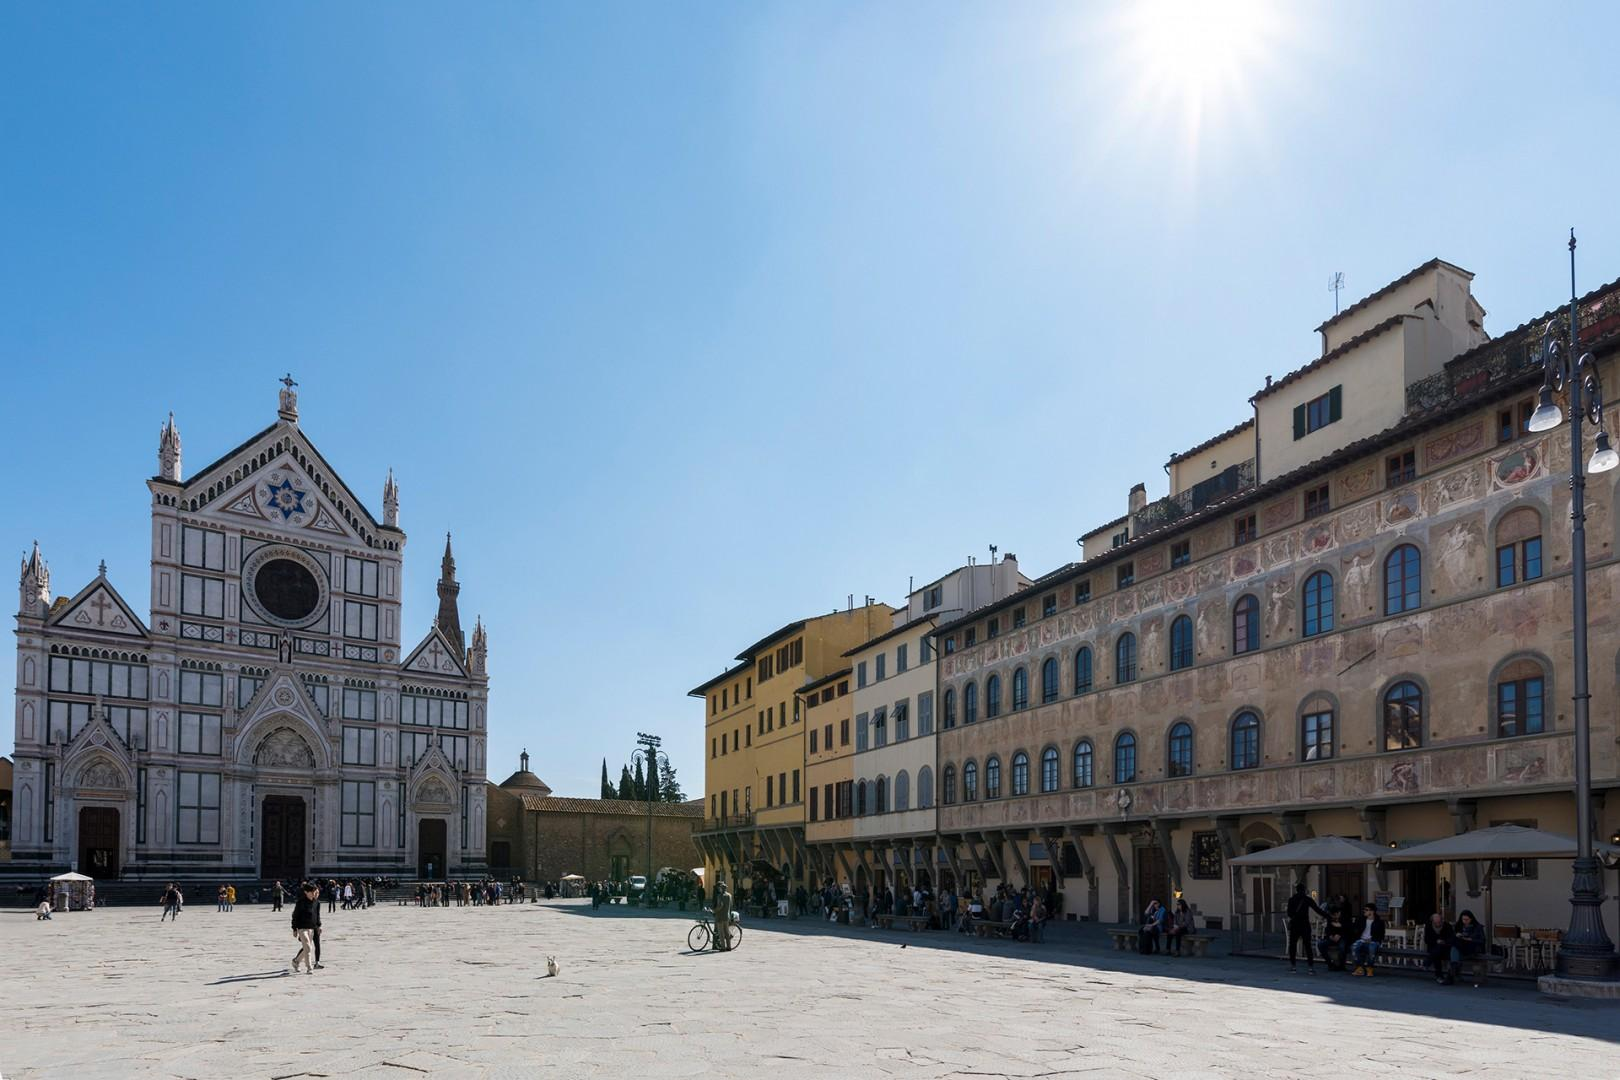 The apartment is located in a beautiful palazzo on the famous Piazza Santa Croce.